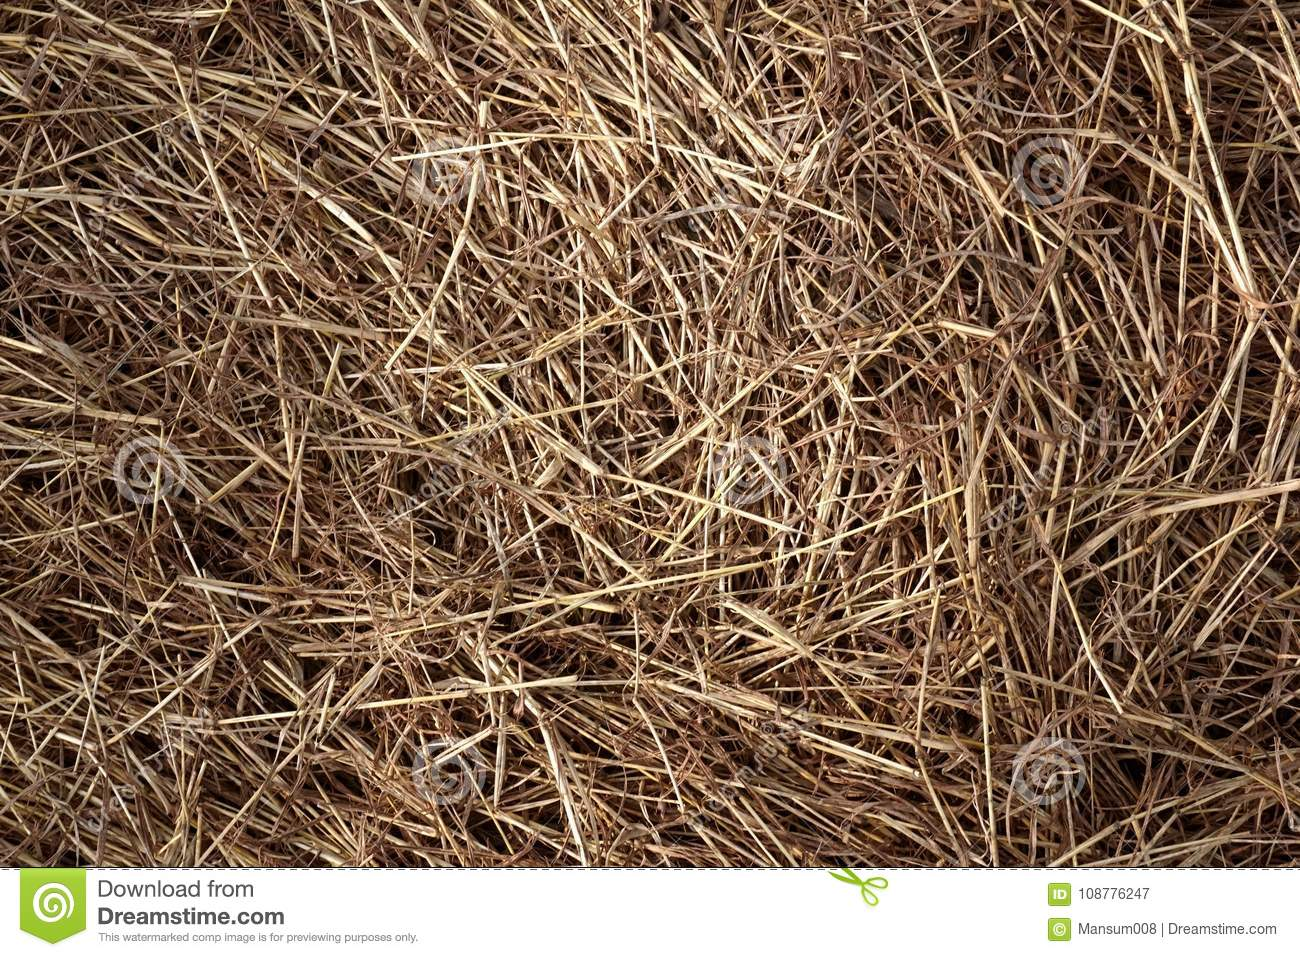 Dry grass texture stock image  Image of sere, natural